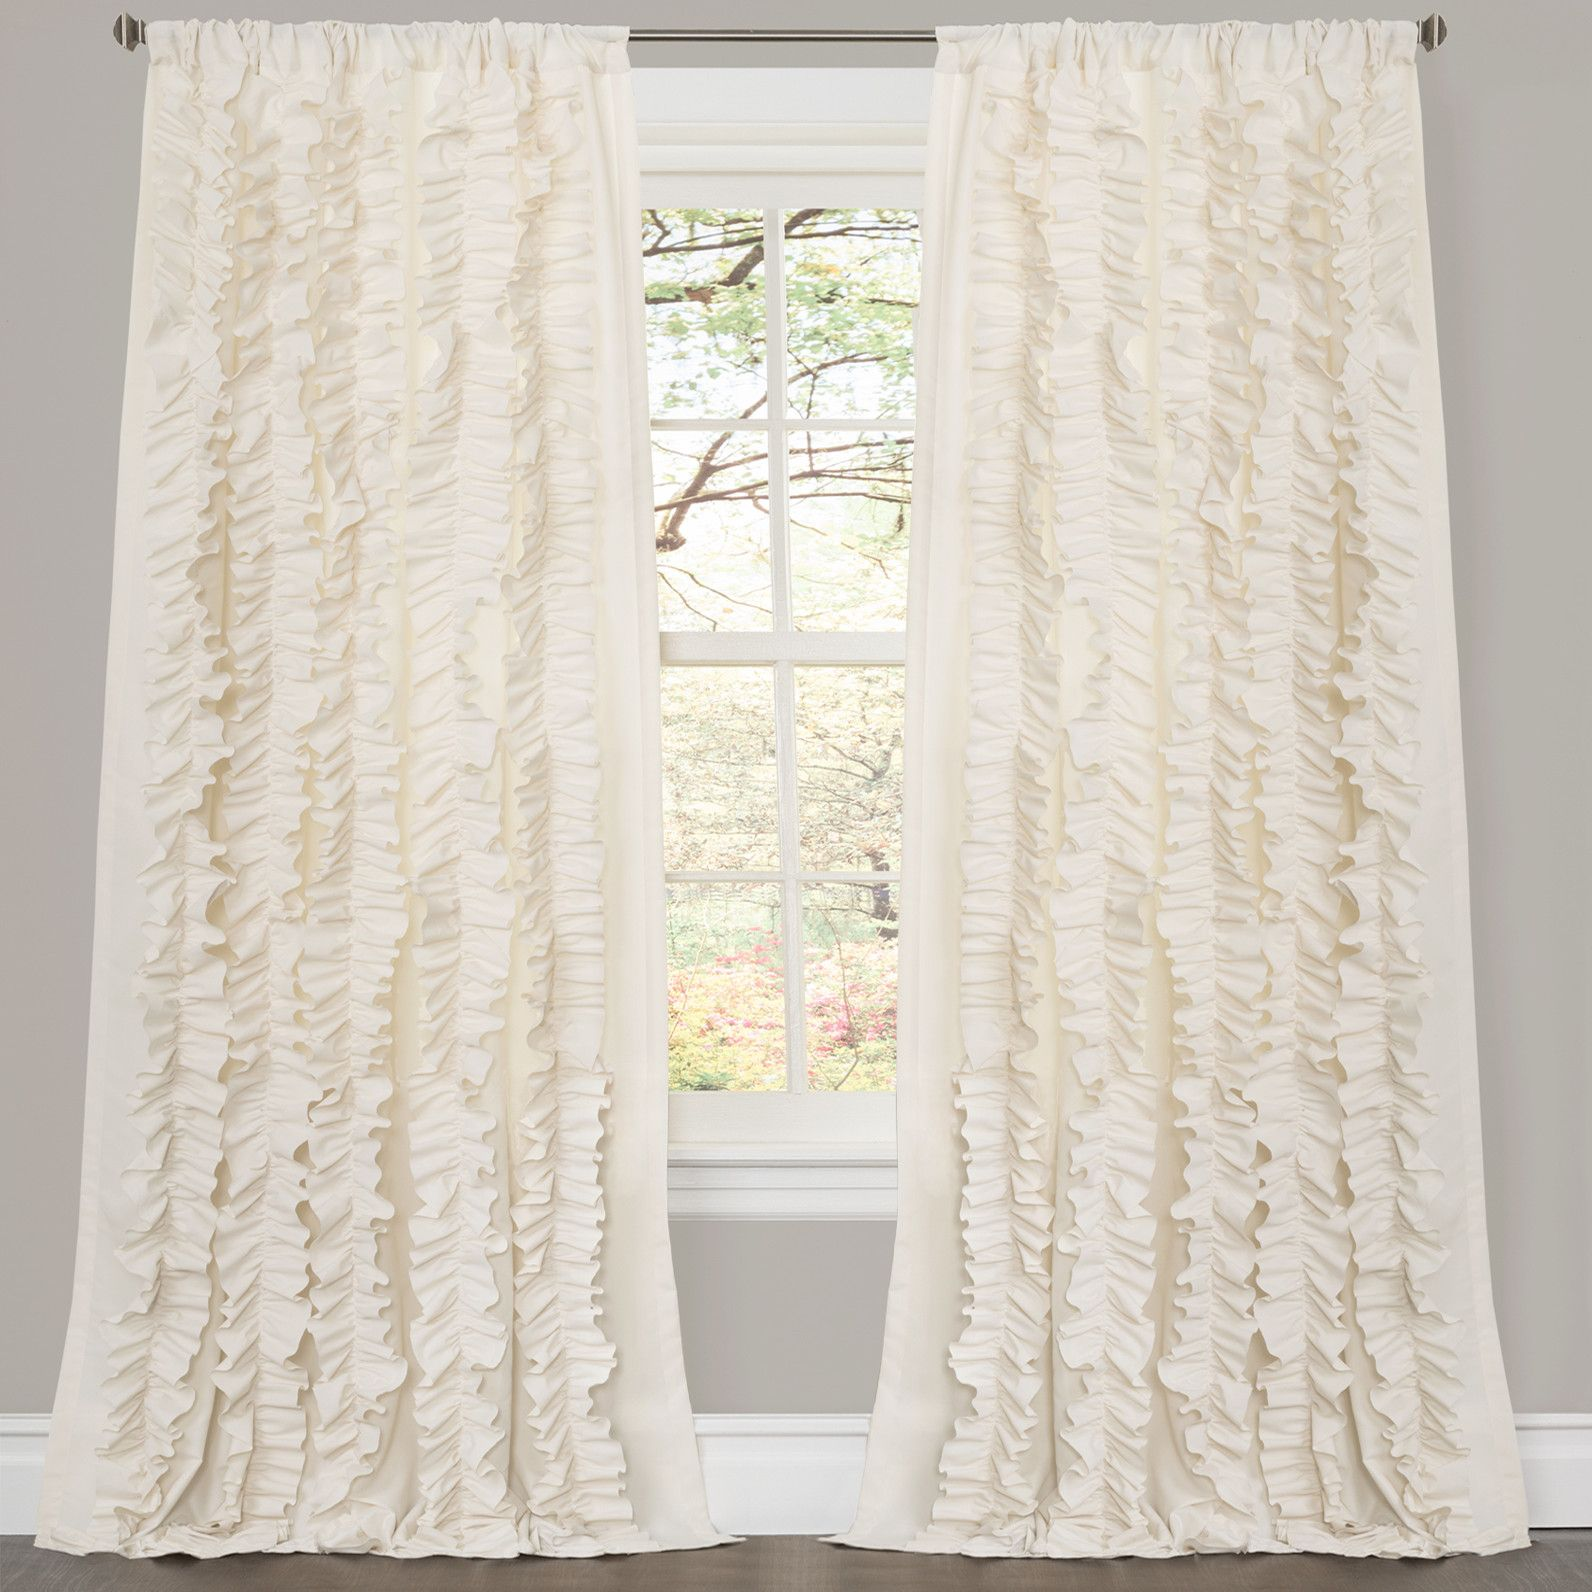 wayfair window treatments belle window treatment collection wayfair interiors pinterest